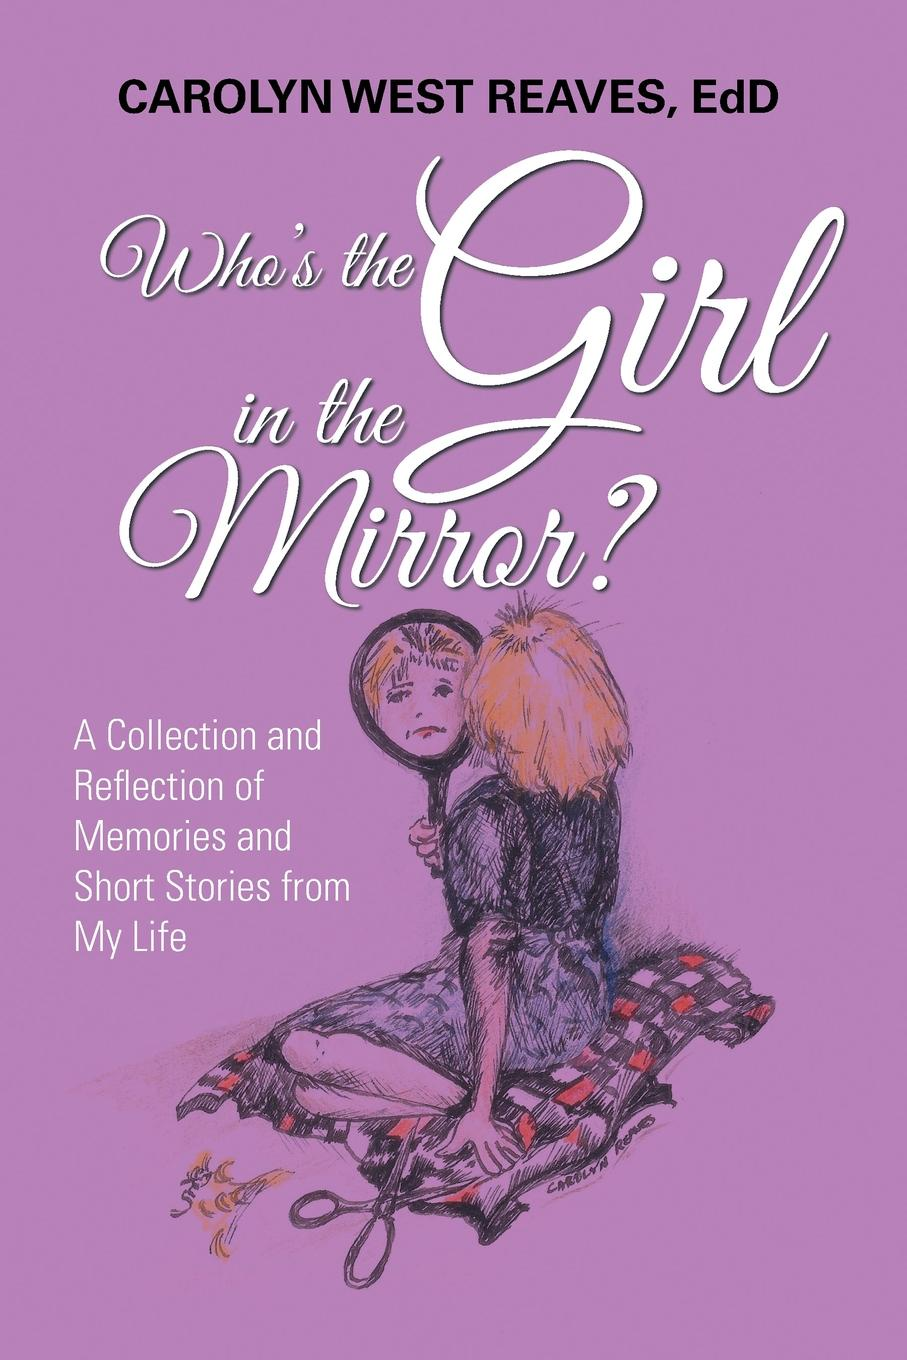 Carolyn West Reaves EdD Who.s the Girl in the Mirror.. A Collection and Reflection of Memories and Short Stories from My Life barnard s beautiful broken things